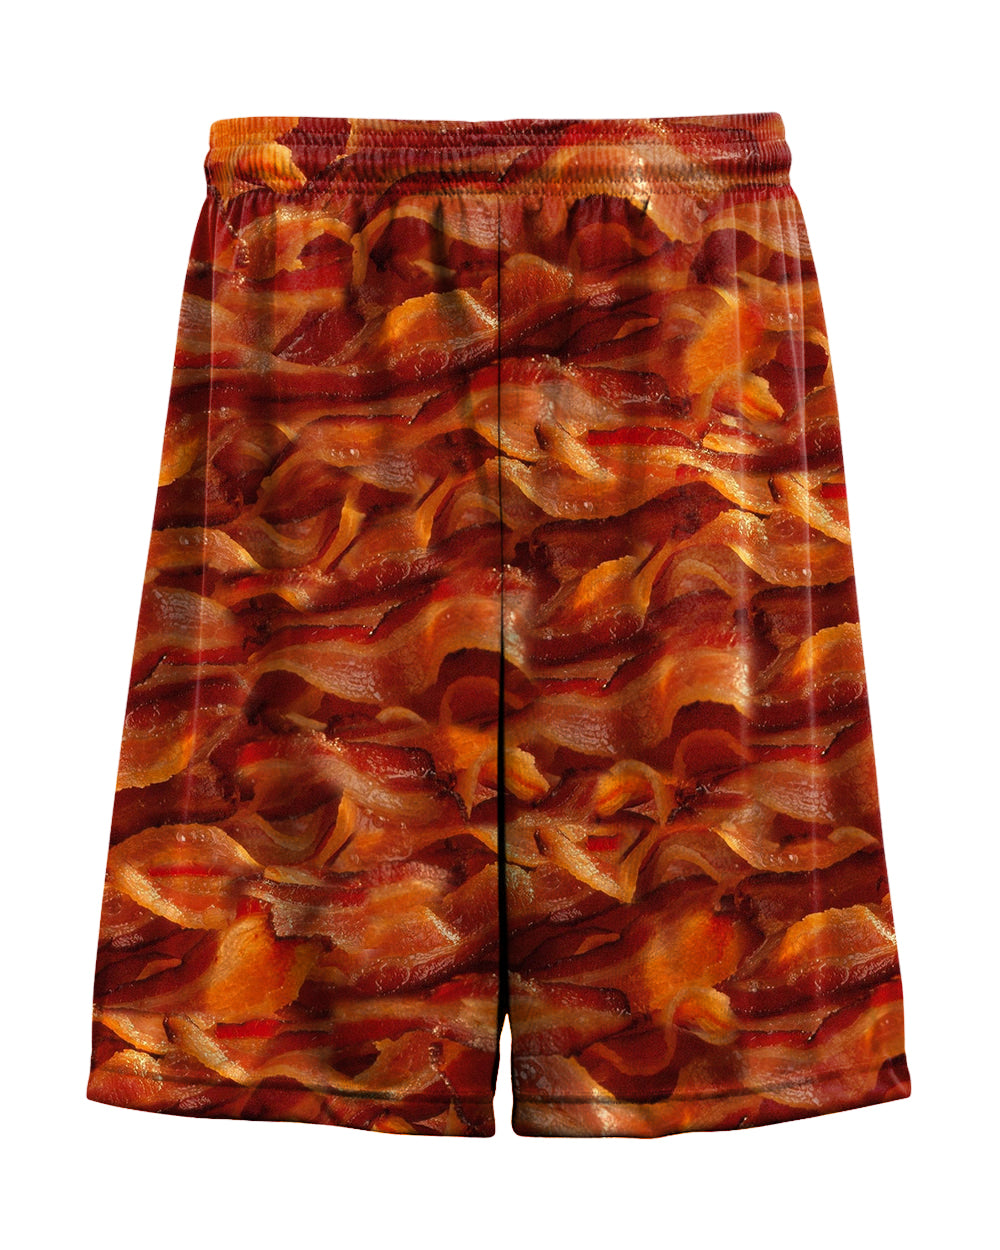 Bacon Performance Shorts